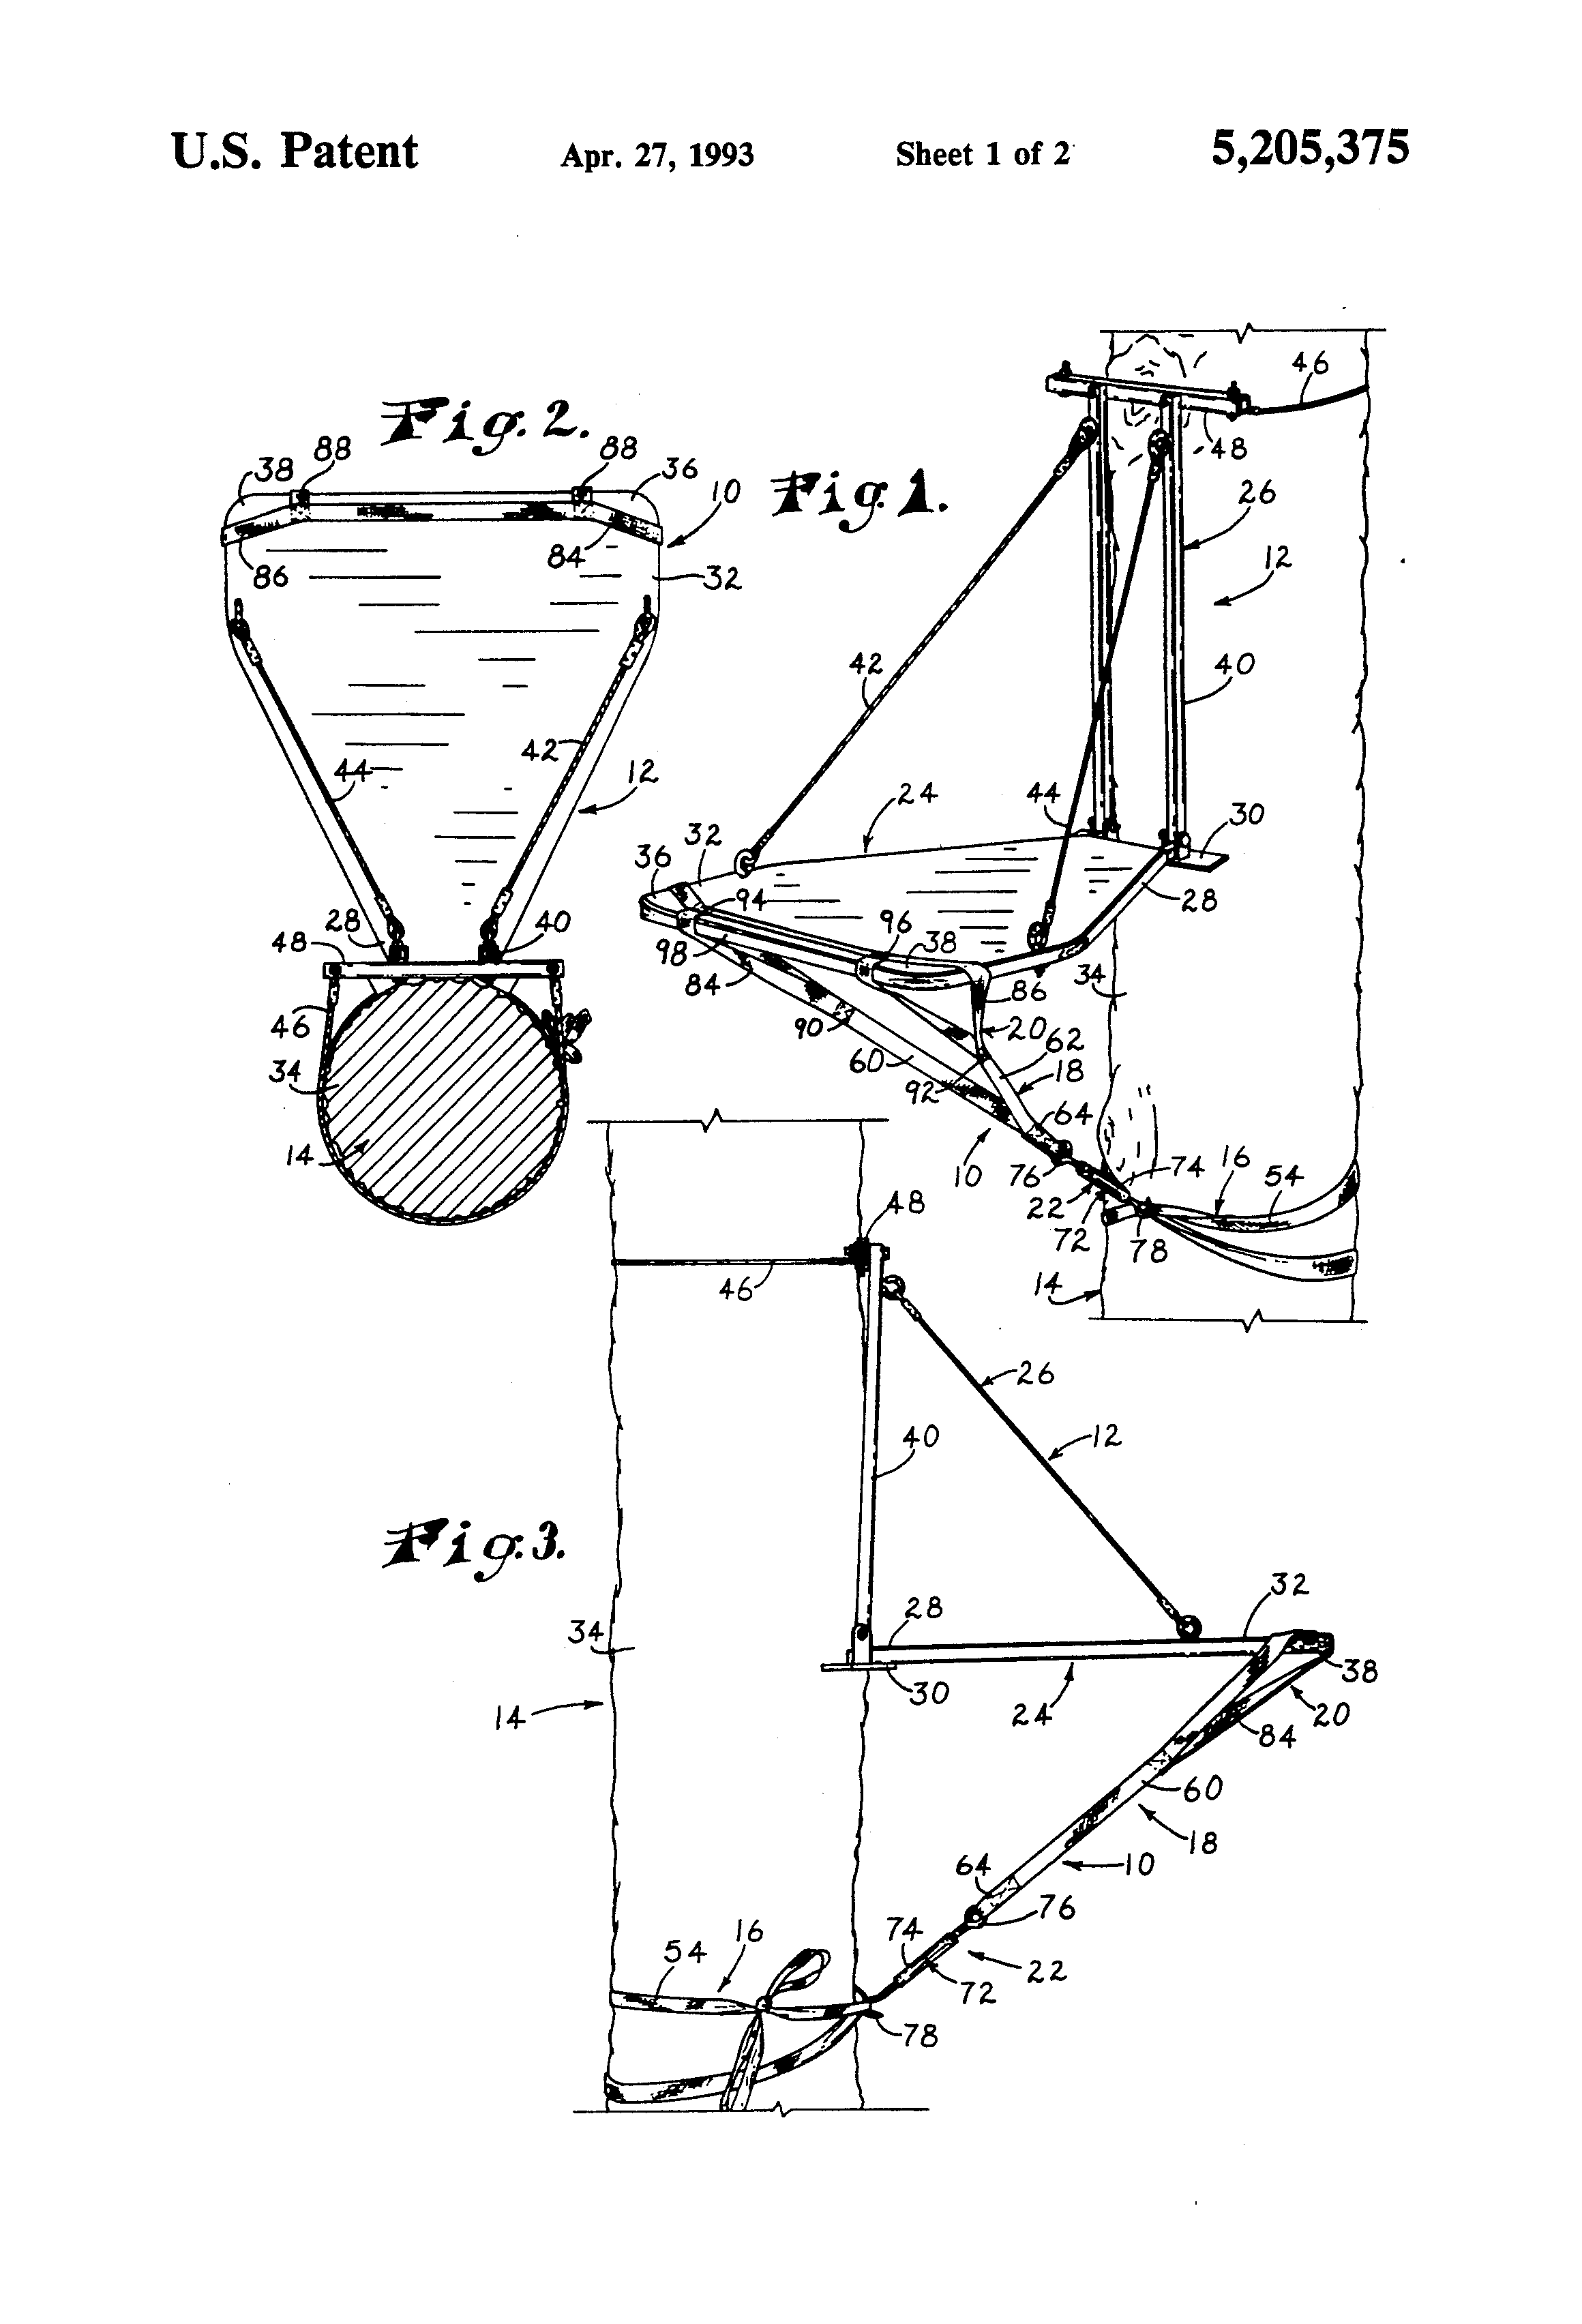 Diy tree stand plans - Patent Drawing